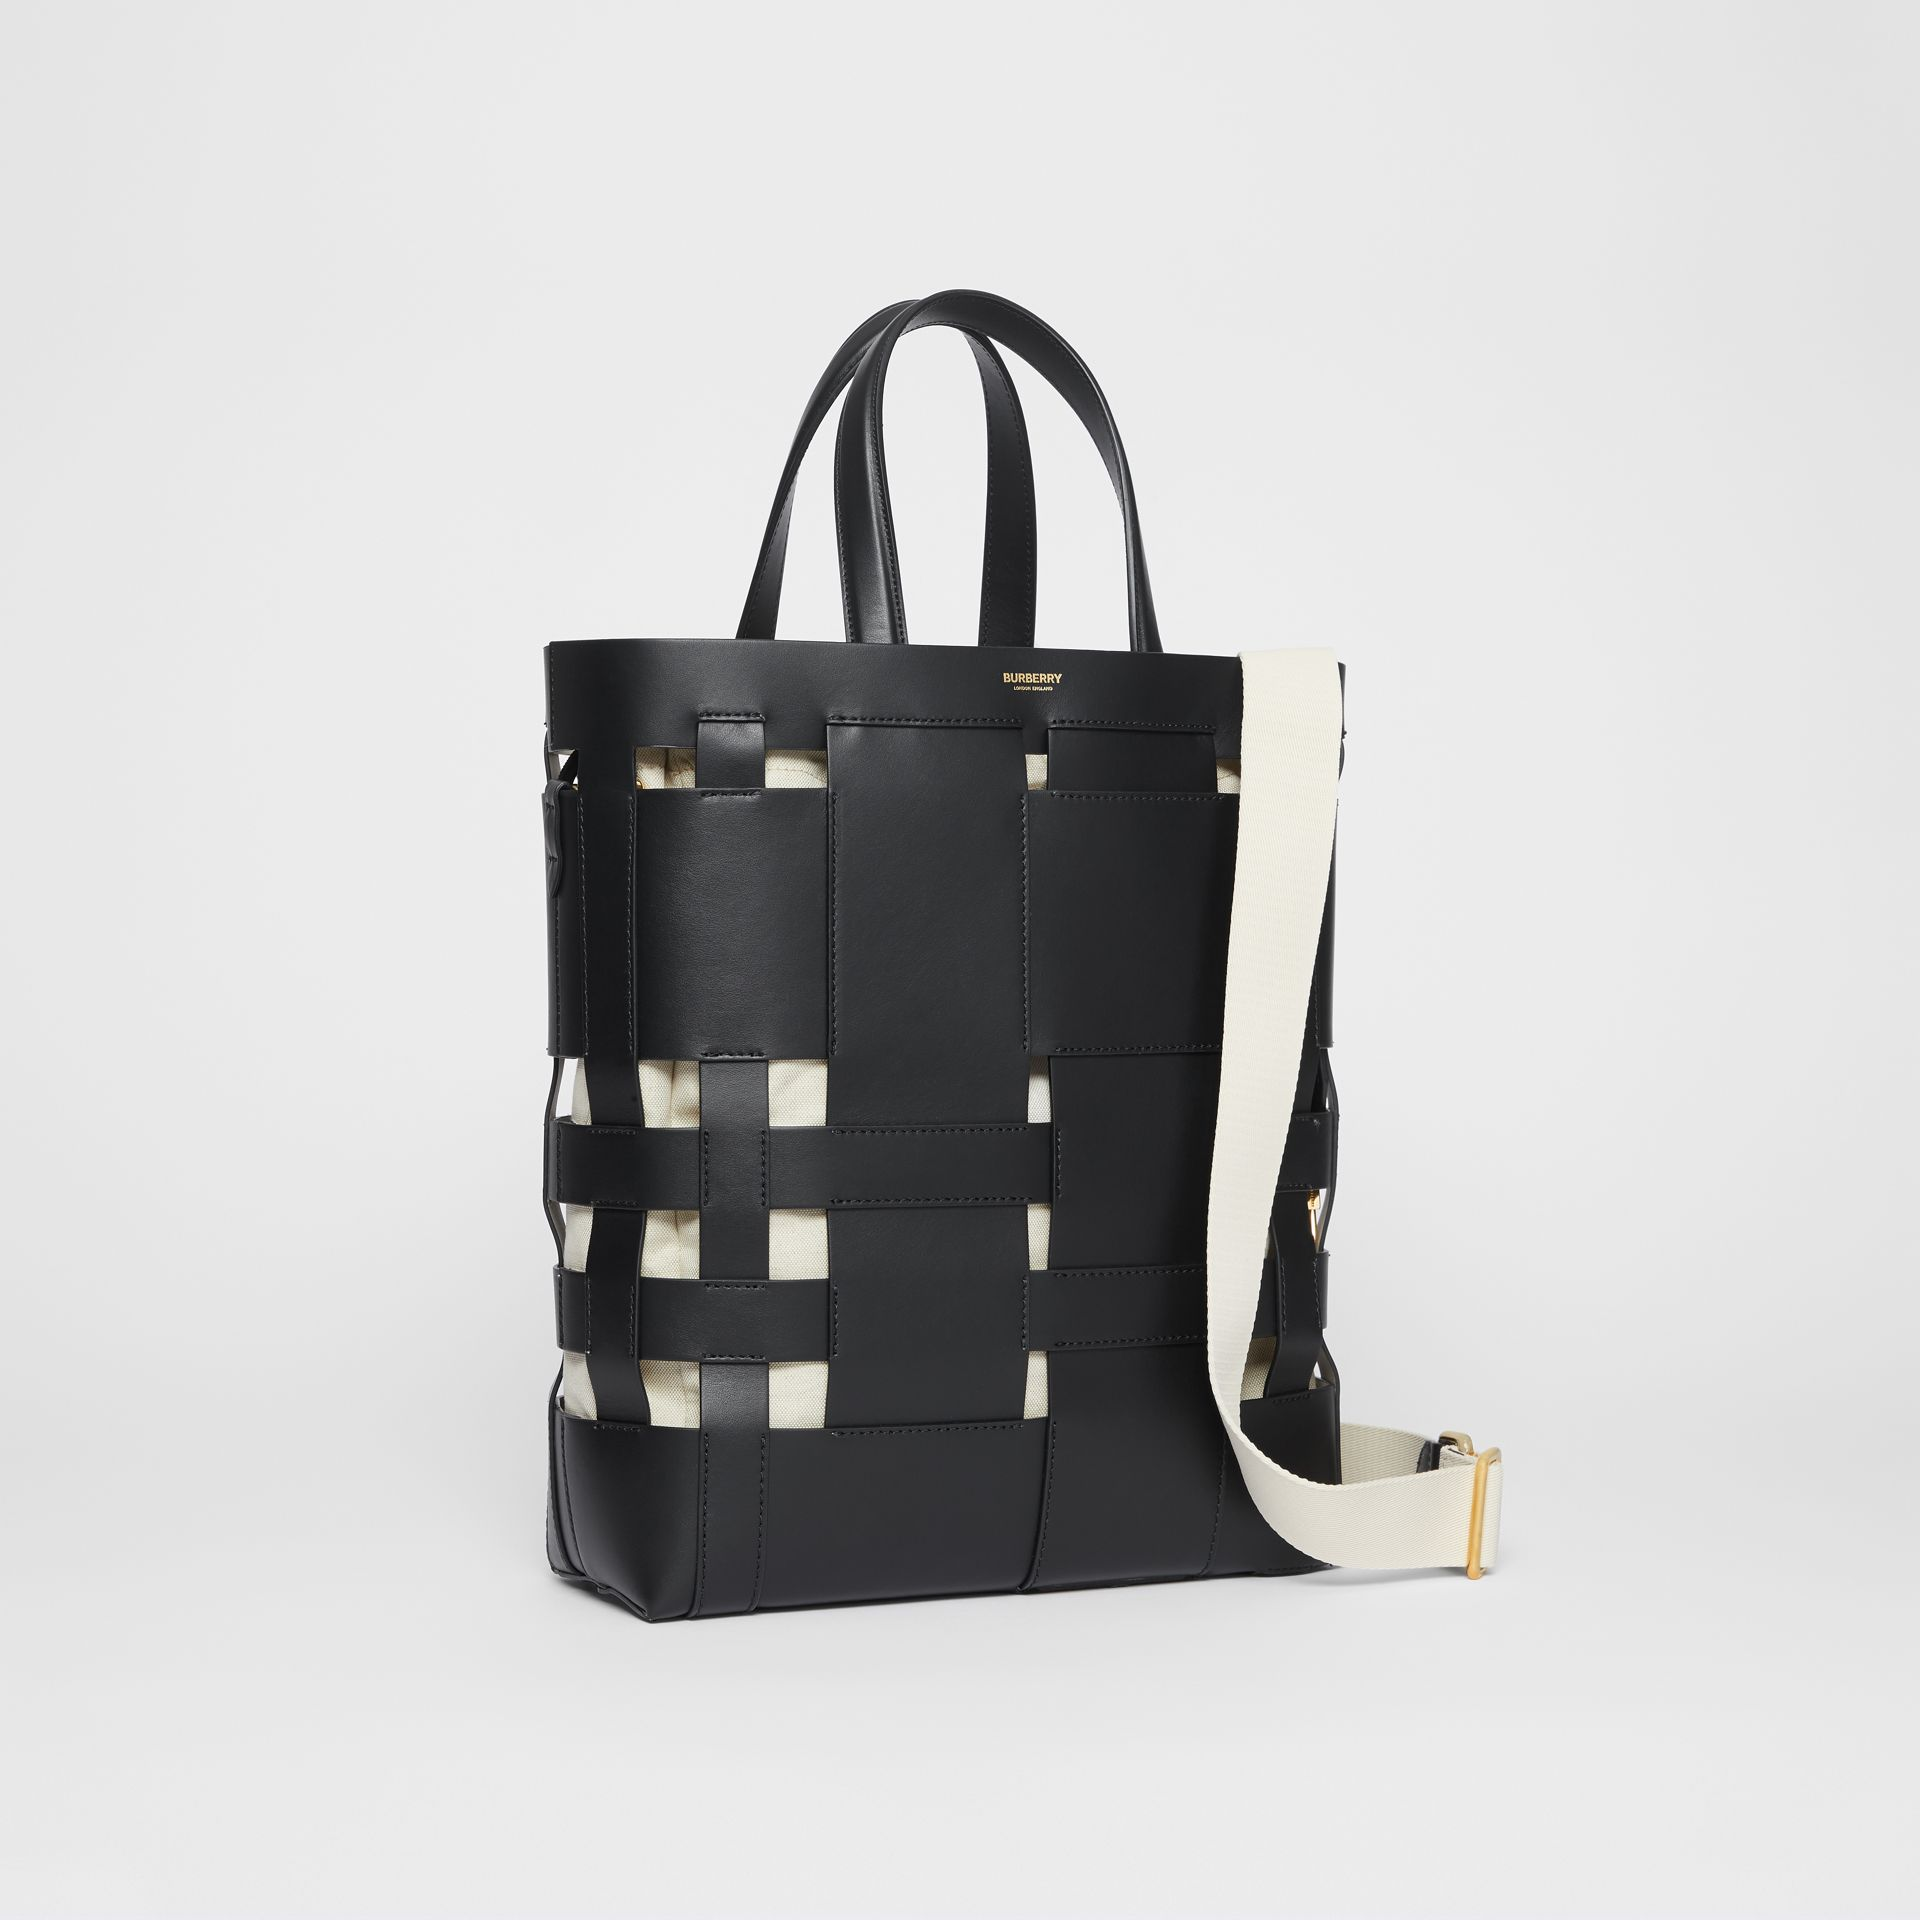 Medium Leather Foster Tote in Black - Women | Burberry Canada - gallery image 4